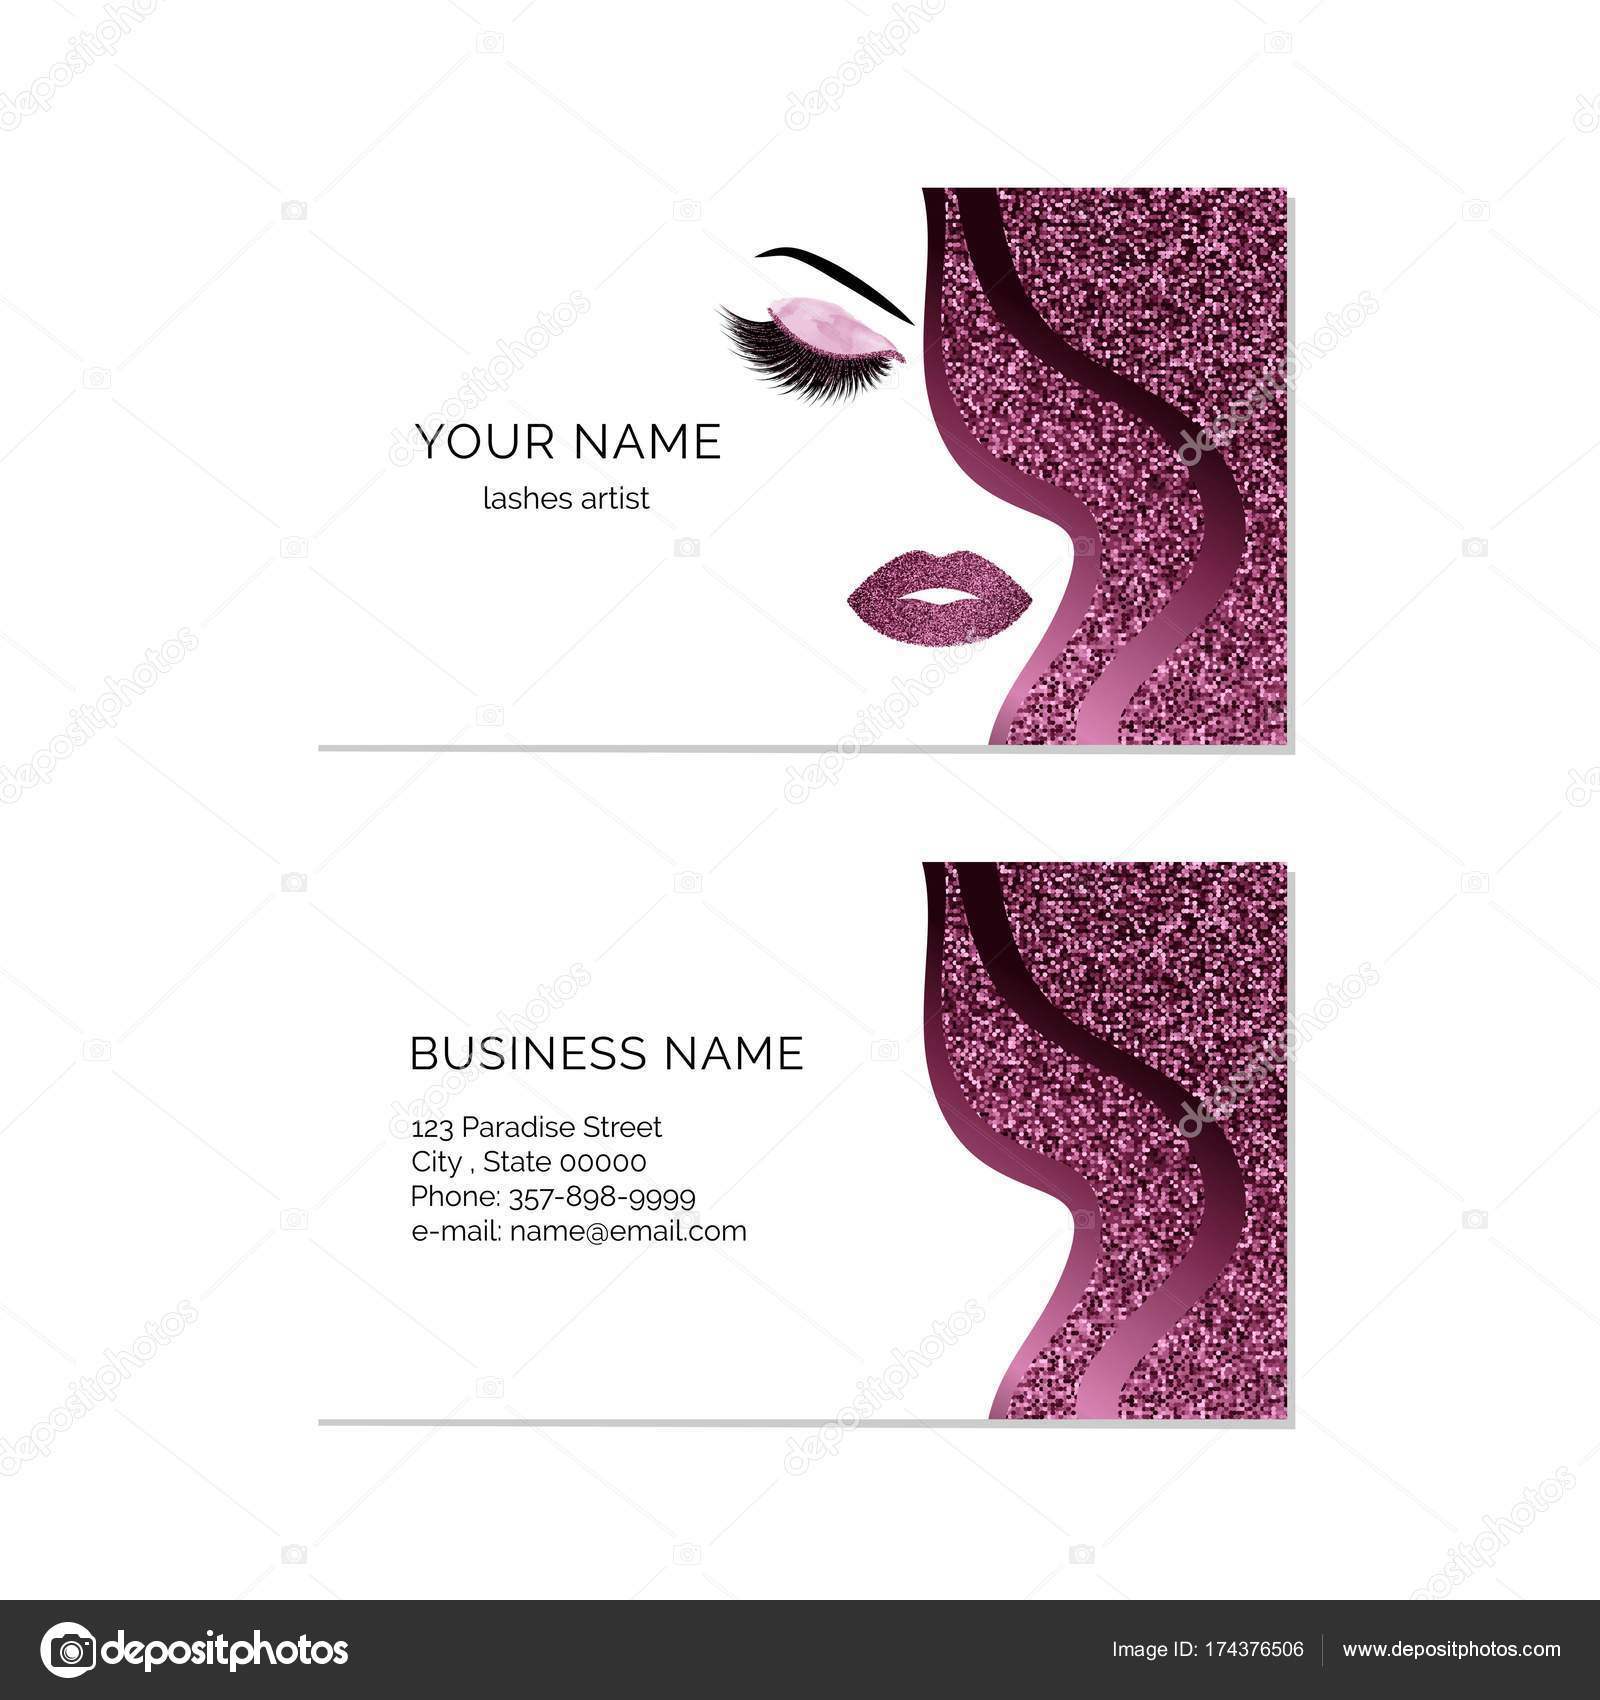 Makeup artist business card vector template stock vector sashica makeup artist business card vector template stock vector colourmoves